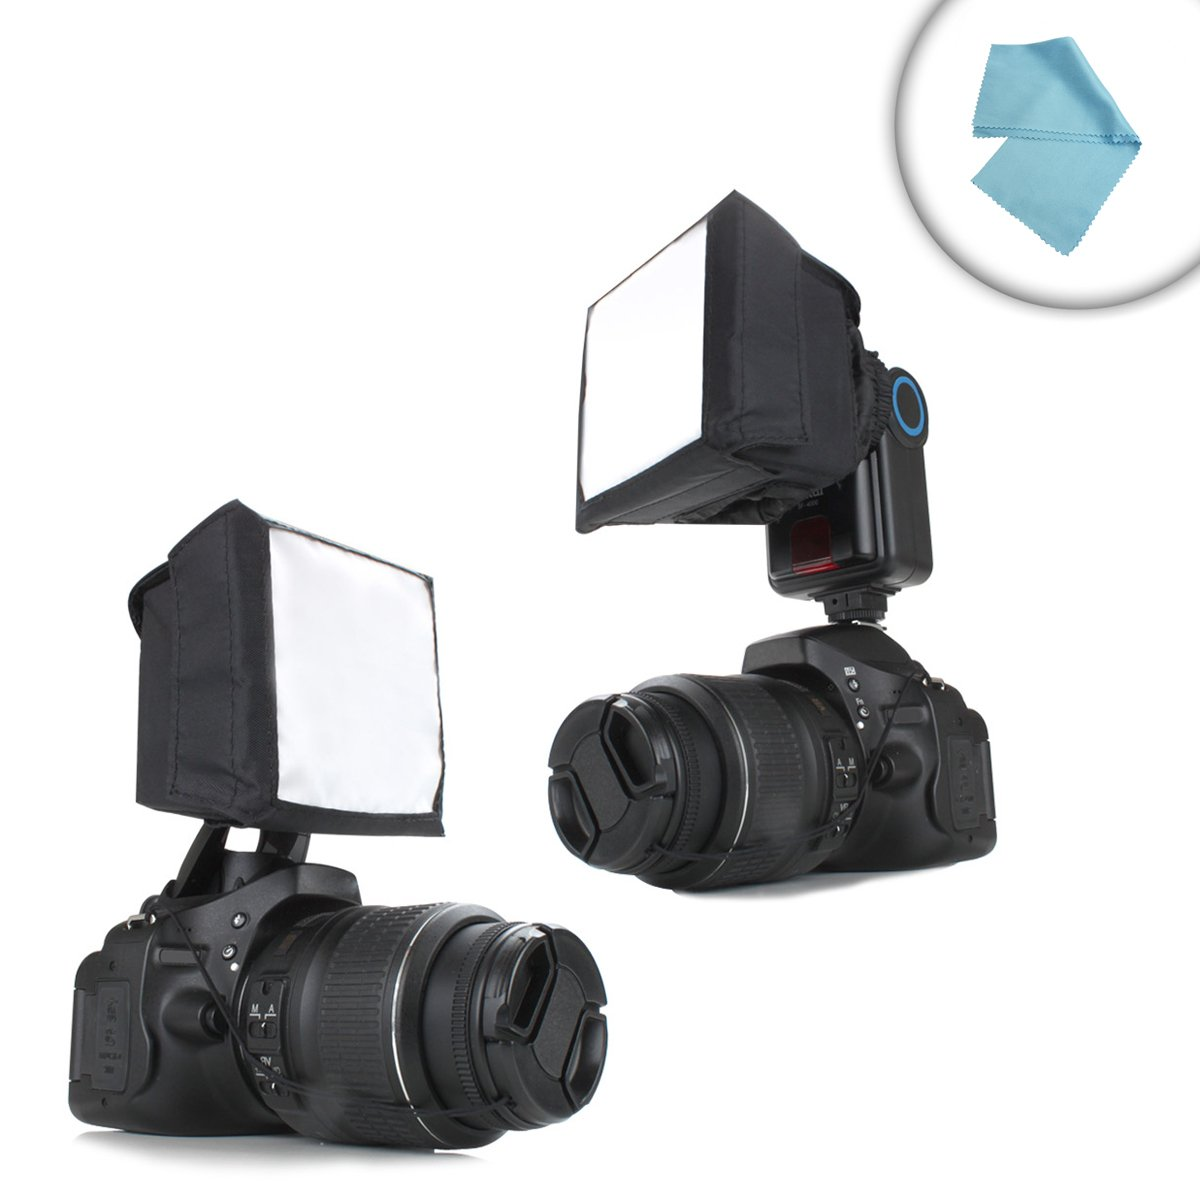 ENHANCE Camera Popup Softbox Flash Diffuser with Portable, Foldable Design for Flashes and External Speedlites - 3.75 Inches - Works With YONGNUO, NEEWER, Altura and more Speedlites